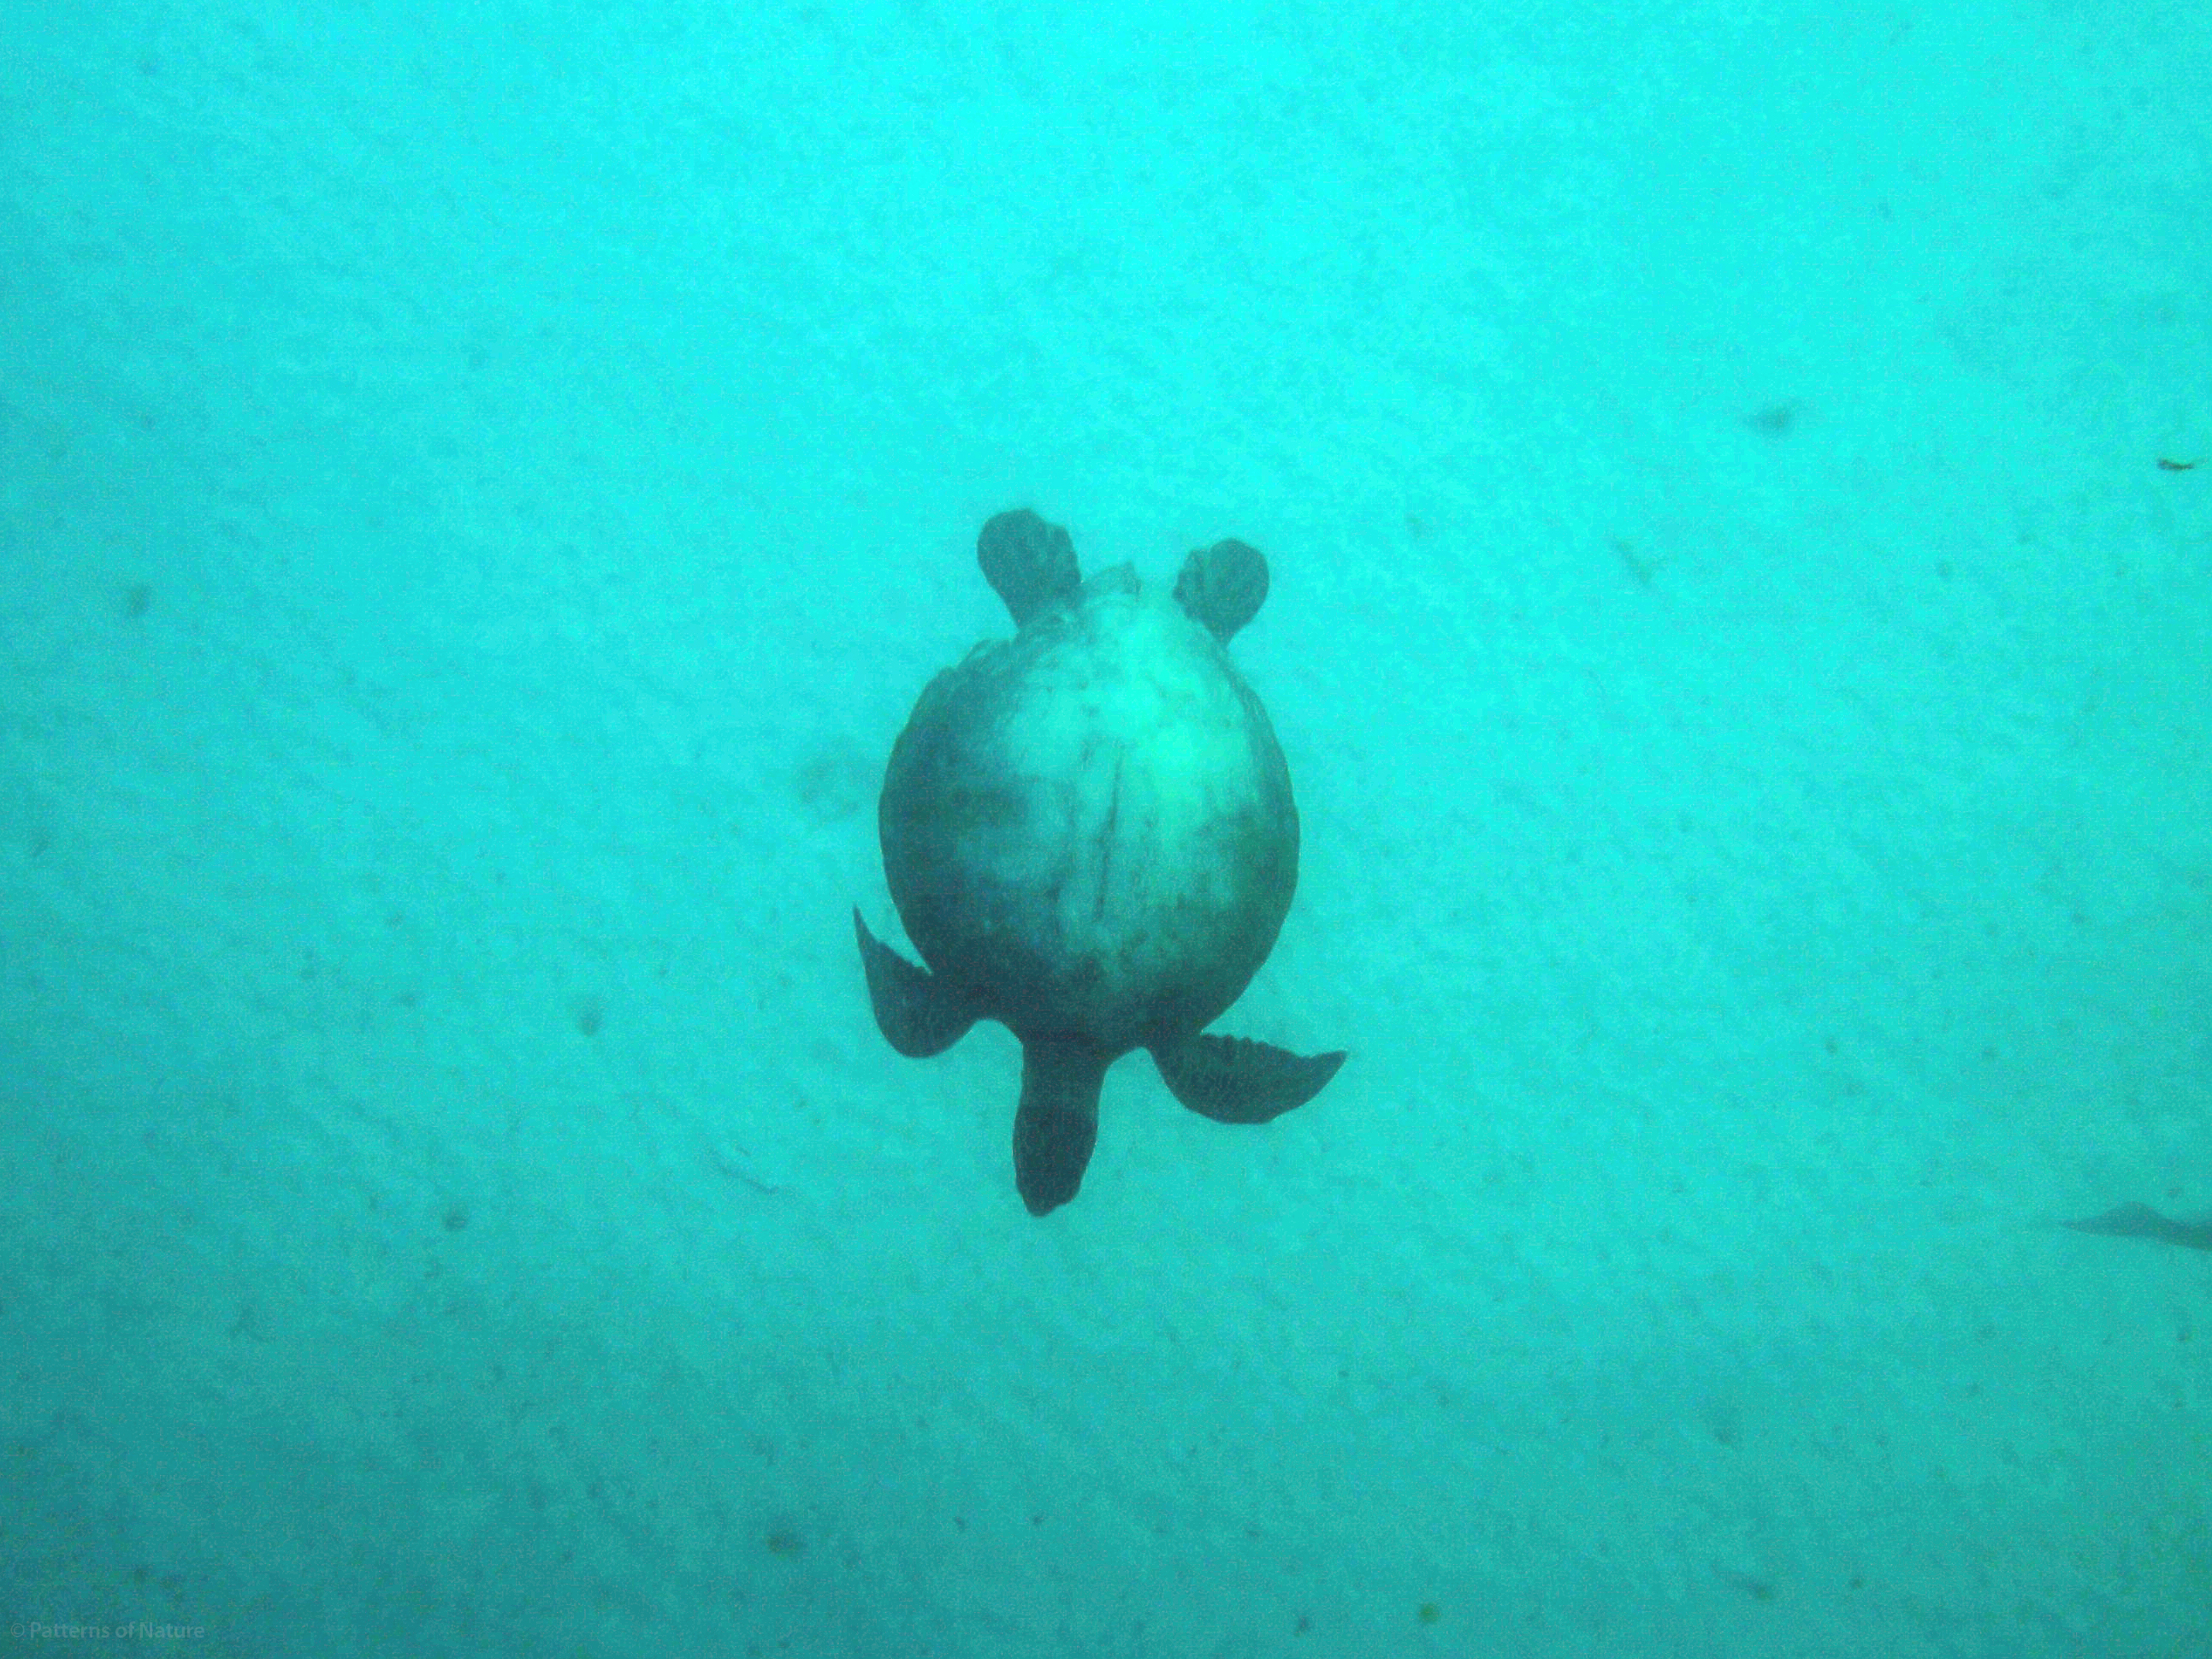 Sea turtles are also abundant in the deeper waters of the reef and the